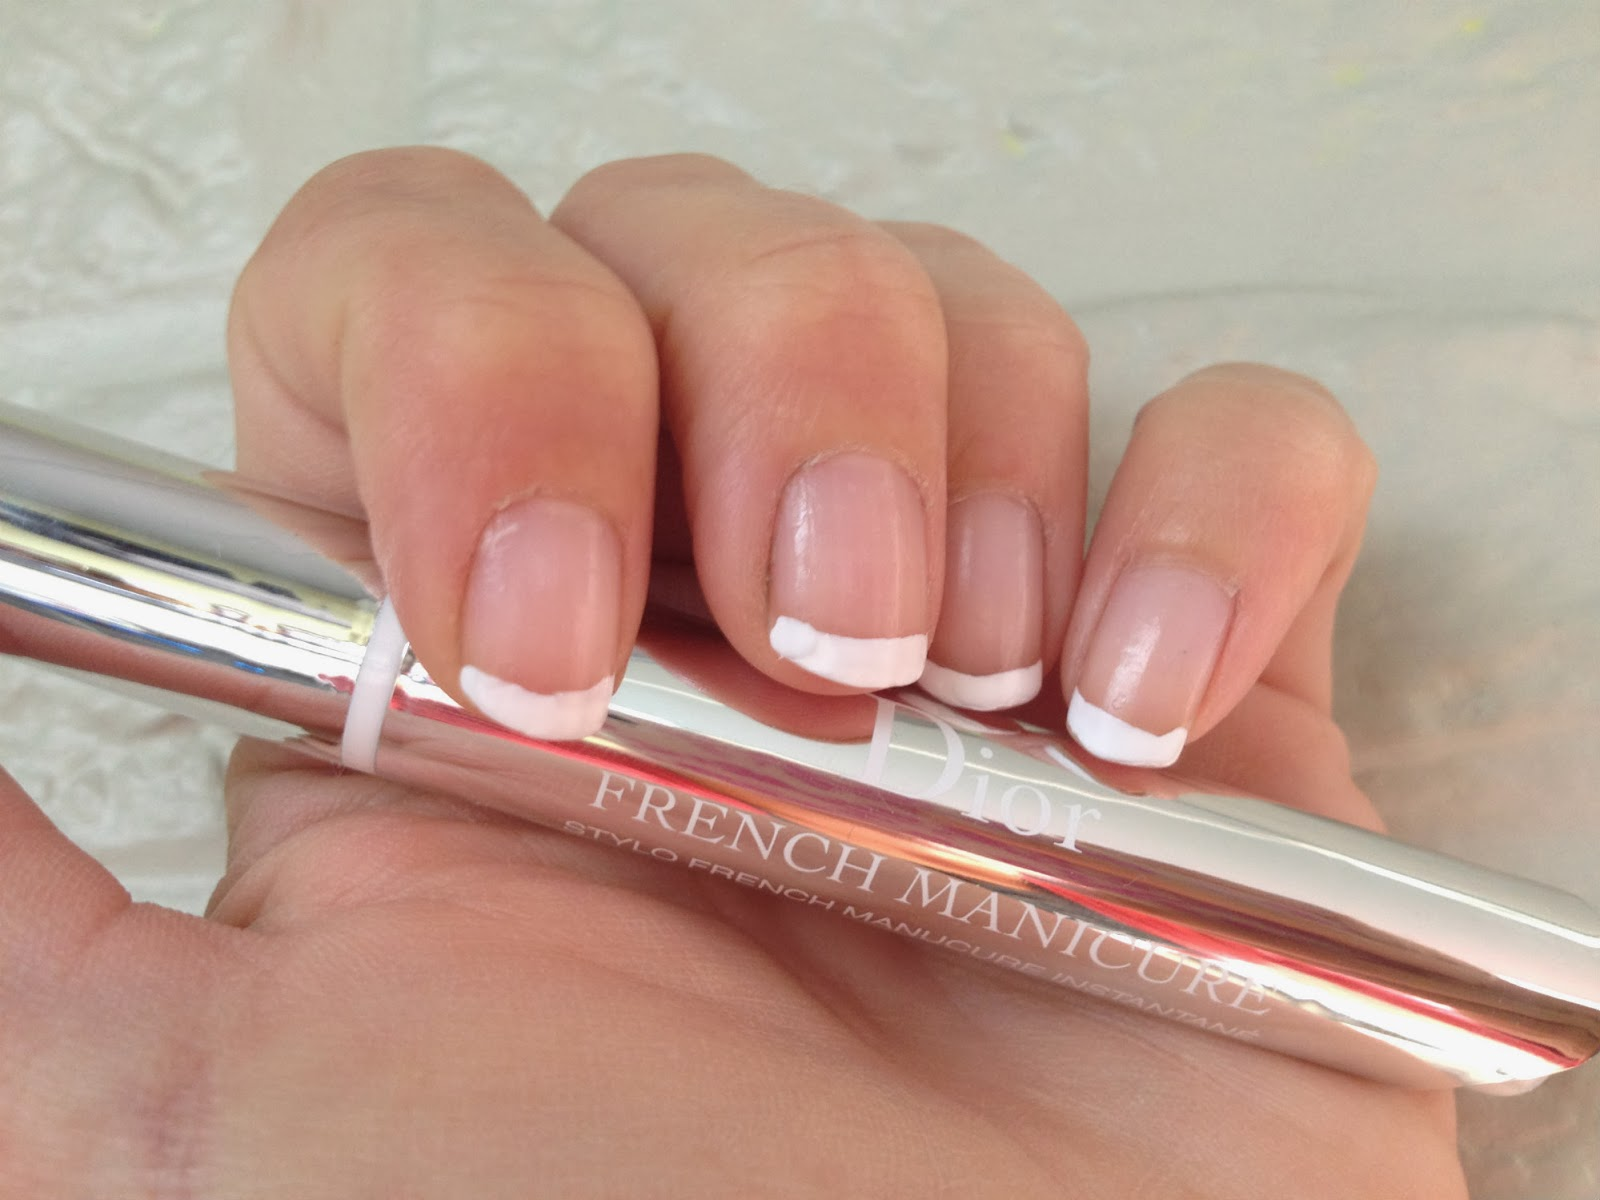 Sprinkles on a cupcake: Dior Instant French Manicure Pen